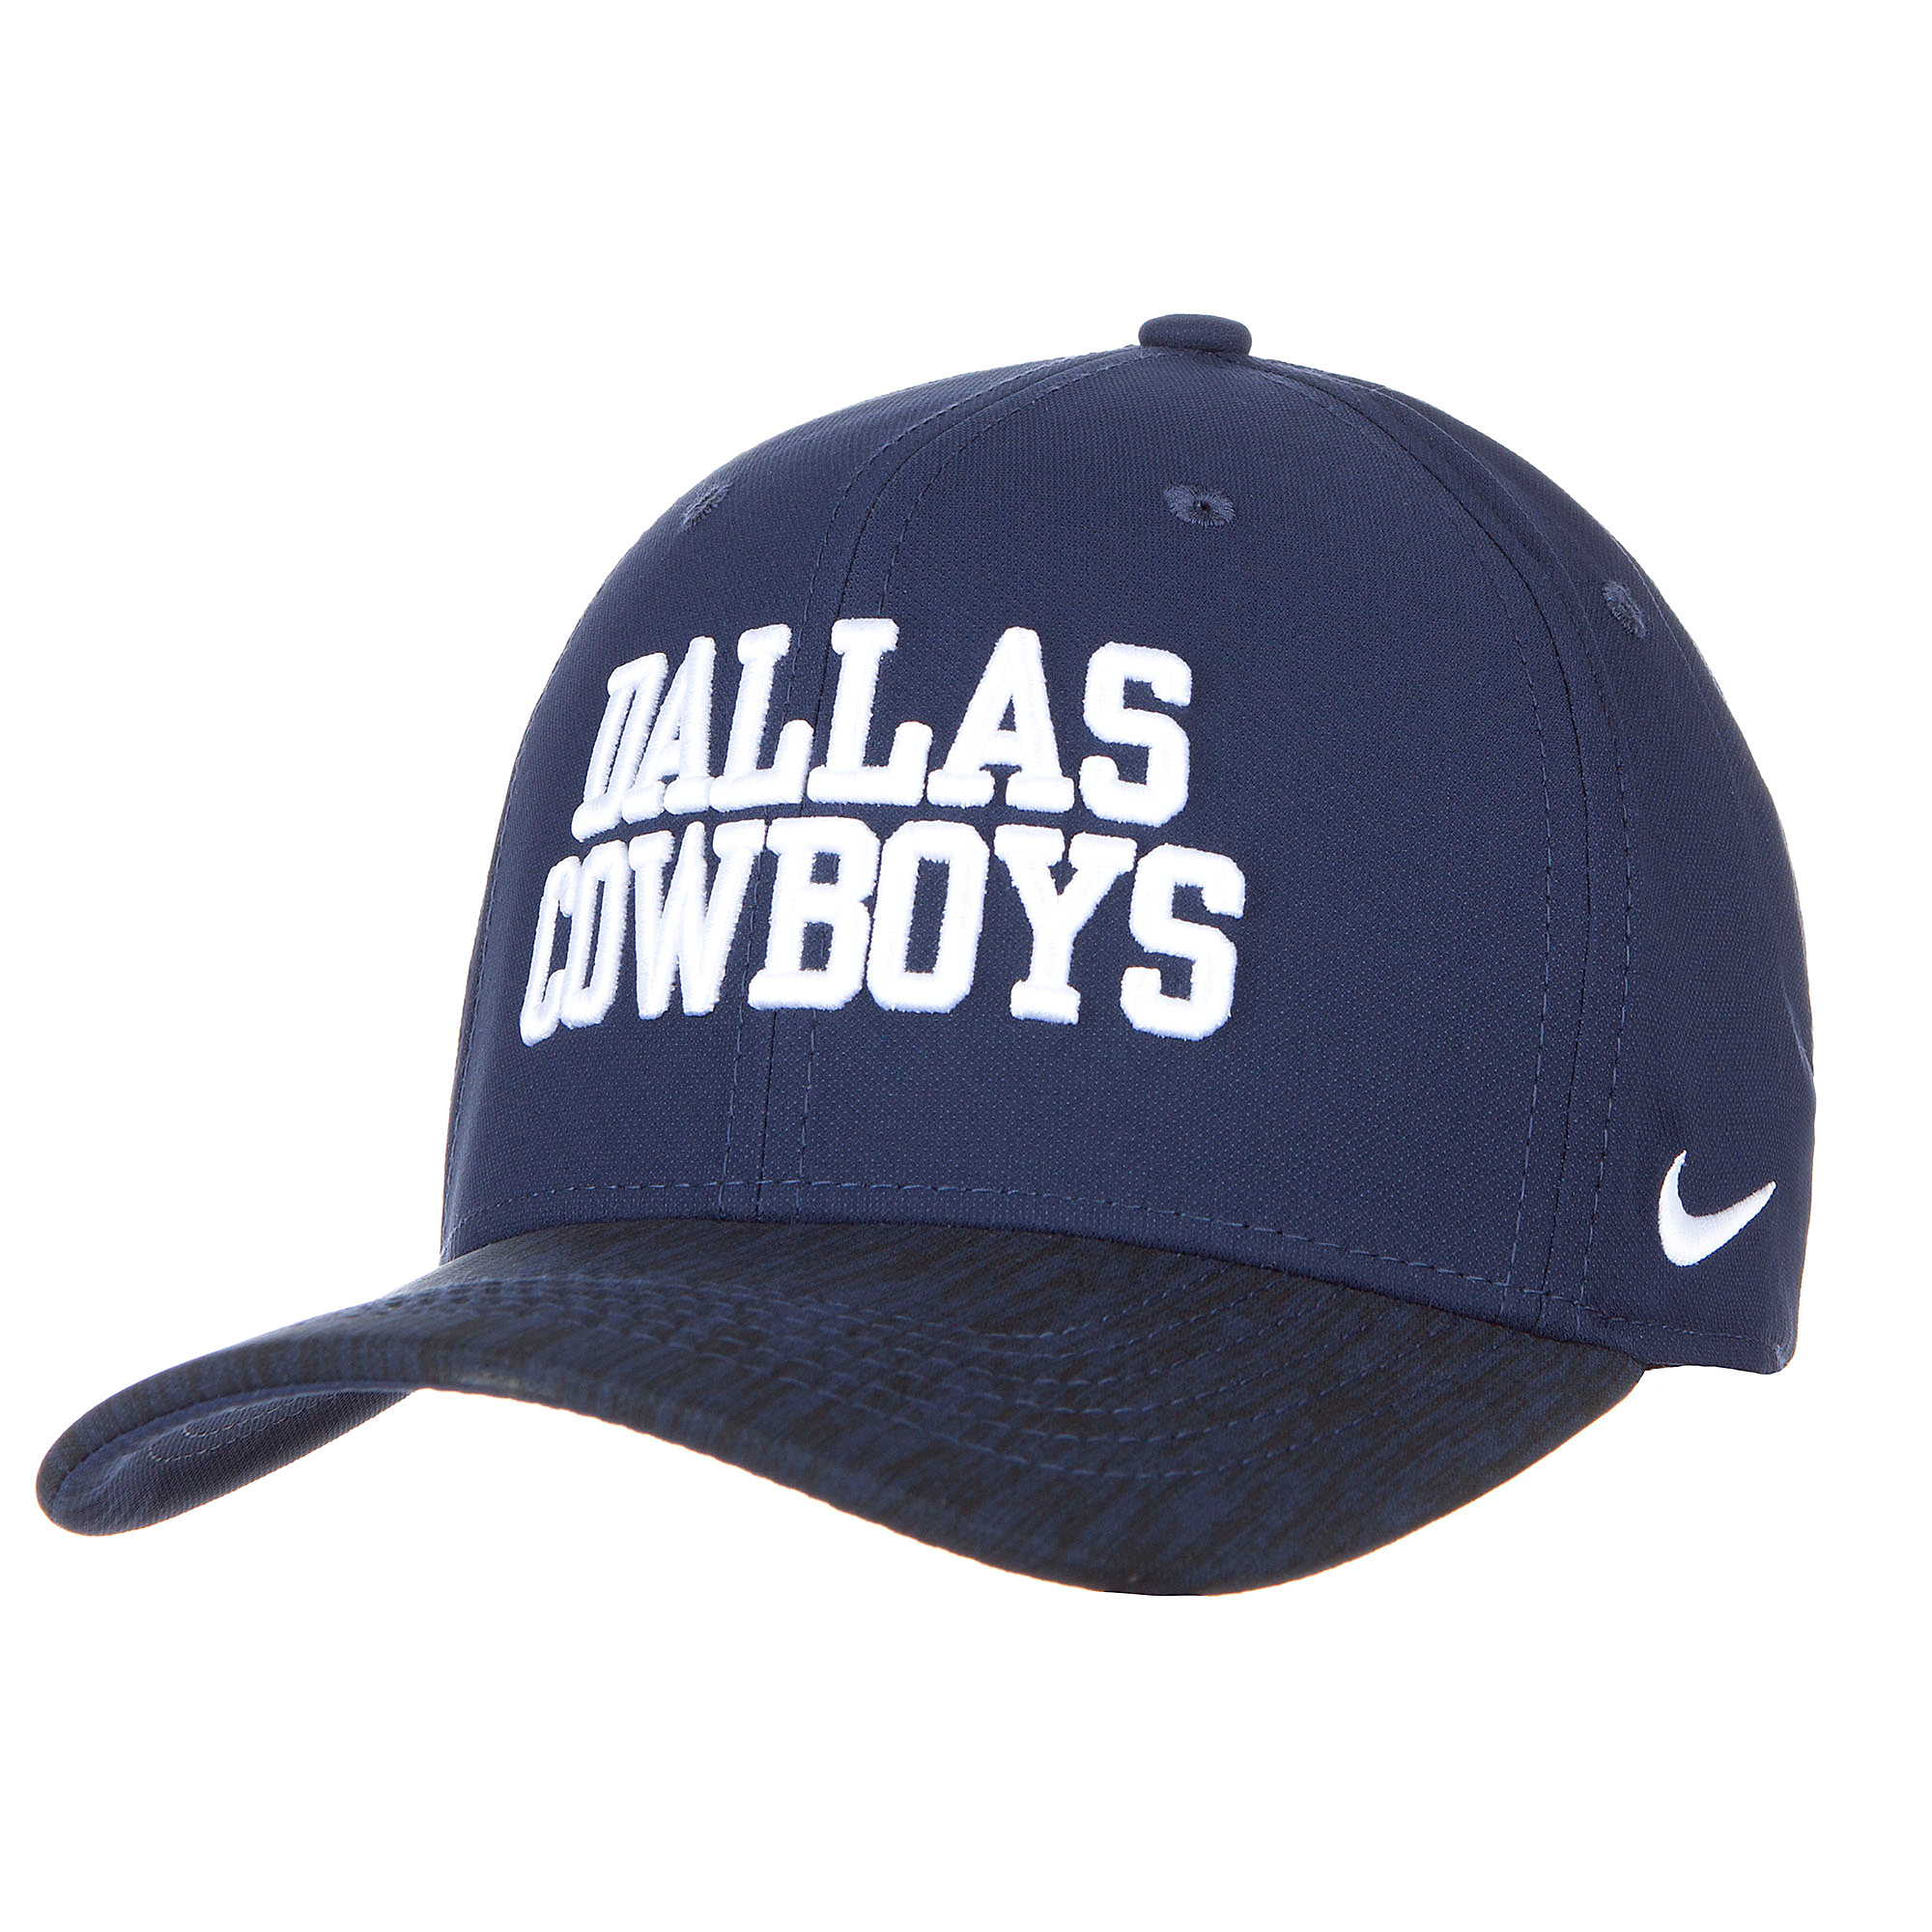 Dallas Cowboys Nike Wordmark Swooshflex Cap